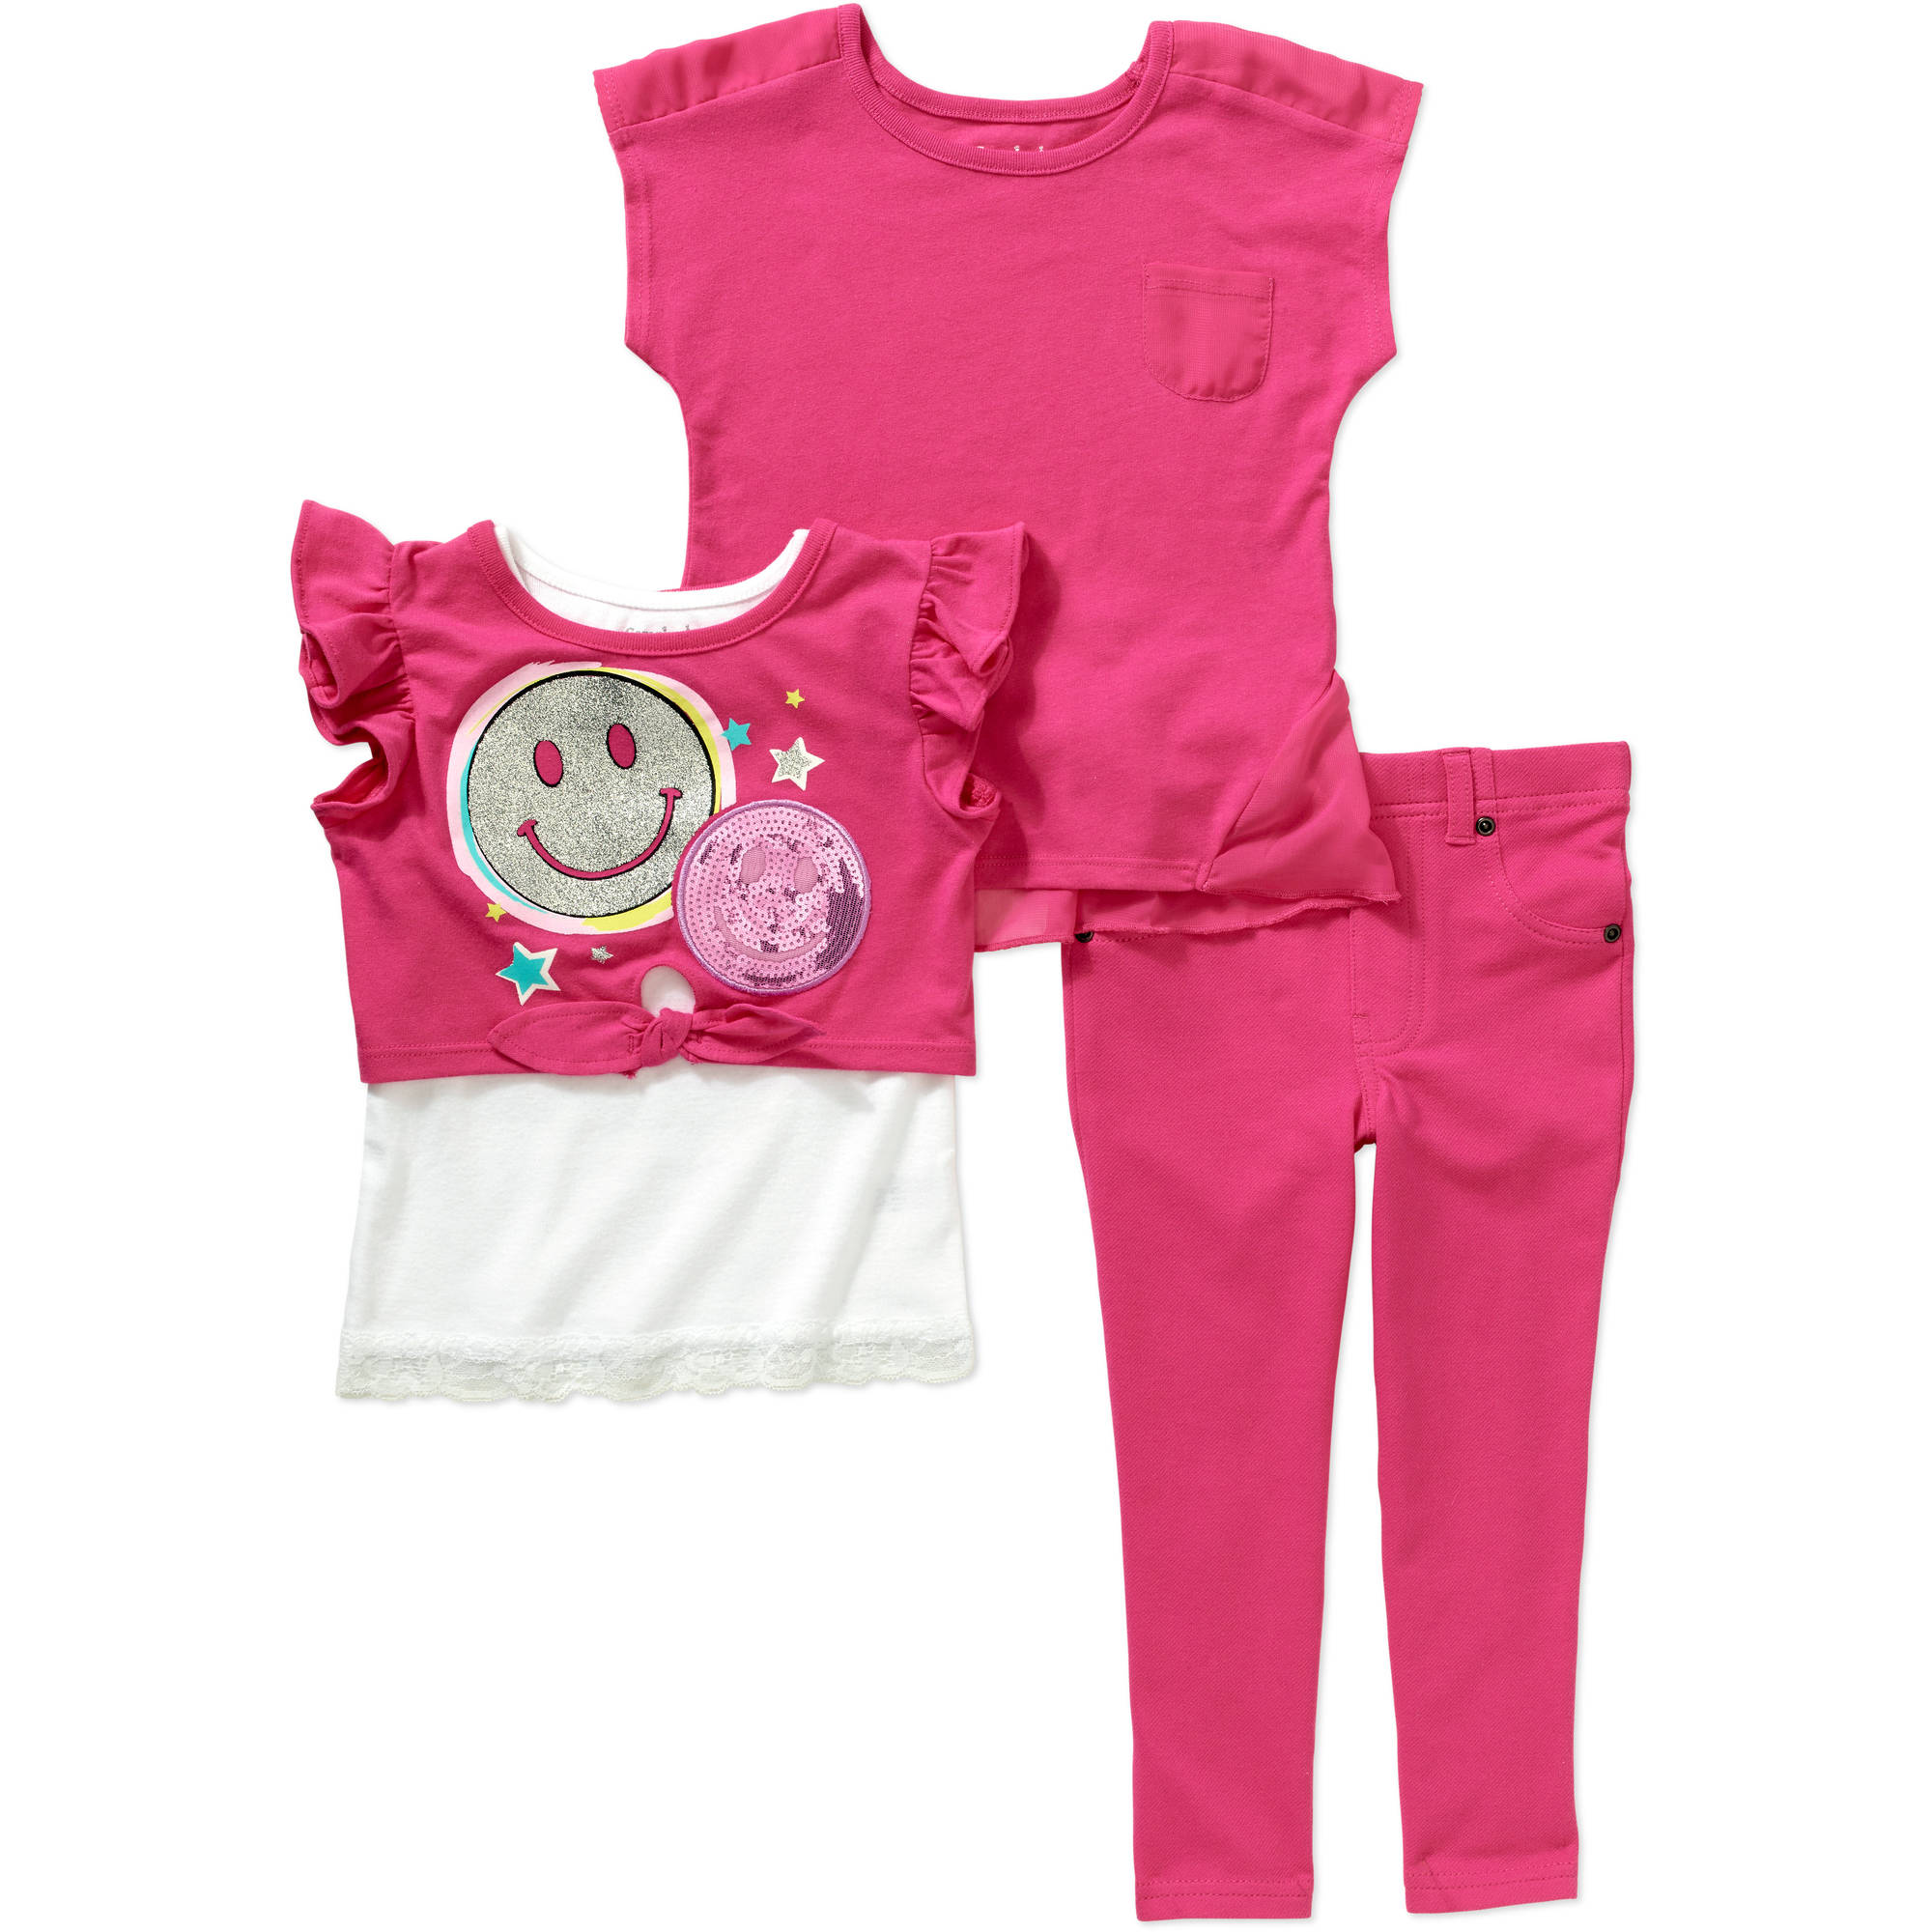 Garanimals Baby Toddler Girl Short Sleeve 2Fer Tee, Pocket Tee, & Jeggings 3-Piece Outfit Set